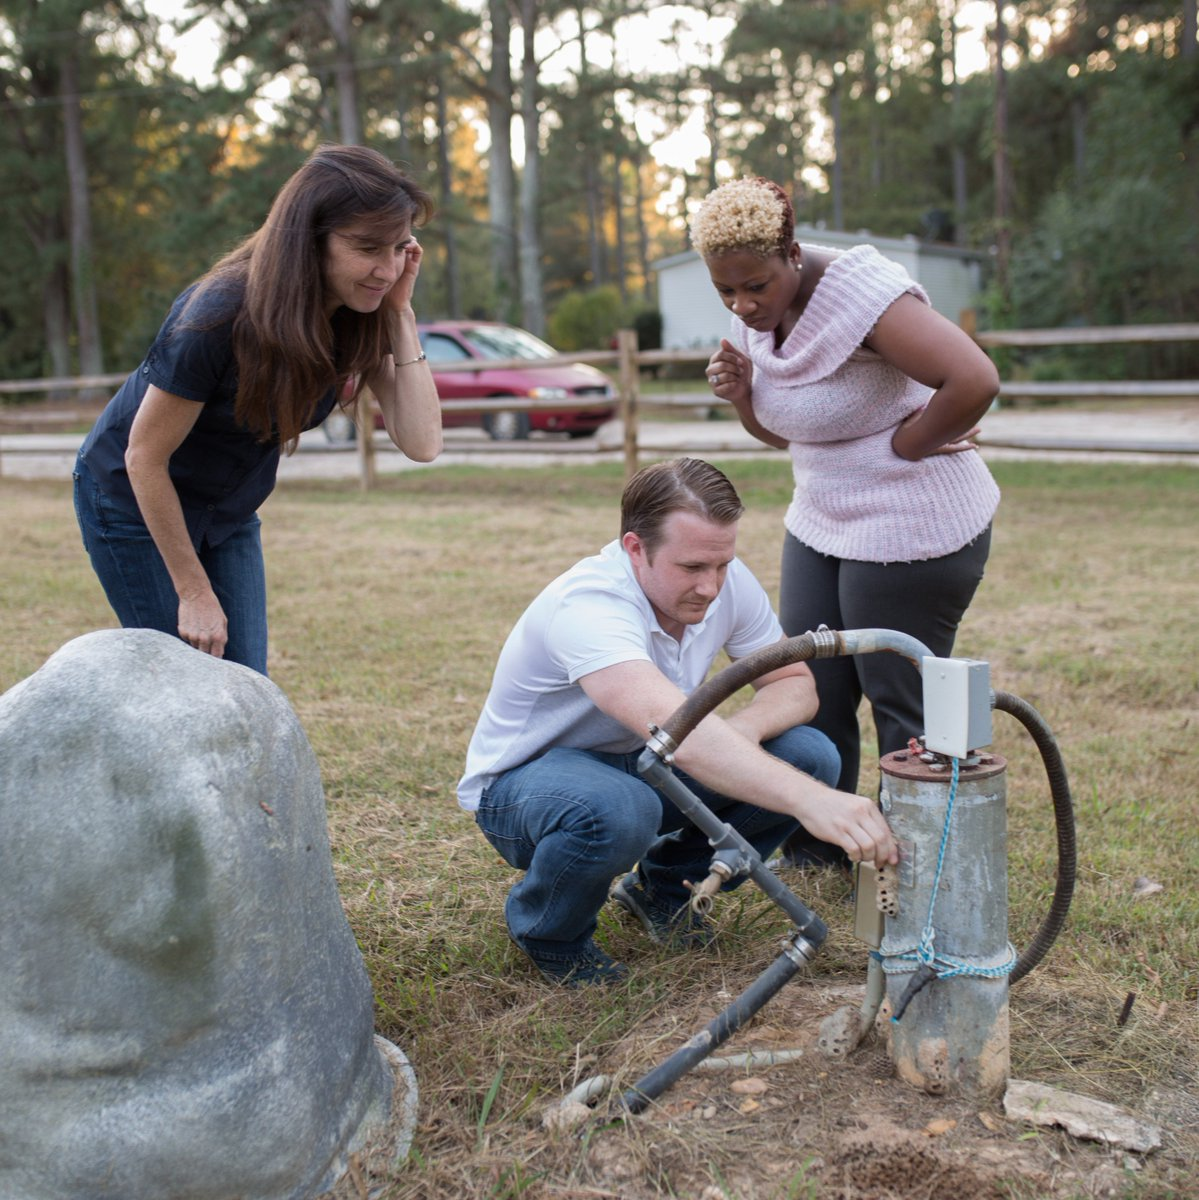 Do you live in #WakeCounty and use a private well for drinking water? Enroll in this #UNC and @RTI_Intl study to receive free water and child blood lead tests: https://t.co/begWSUPwEY https://t.co/5kcRQeSAXO